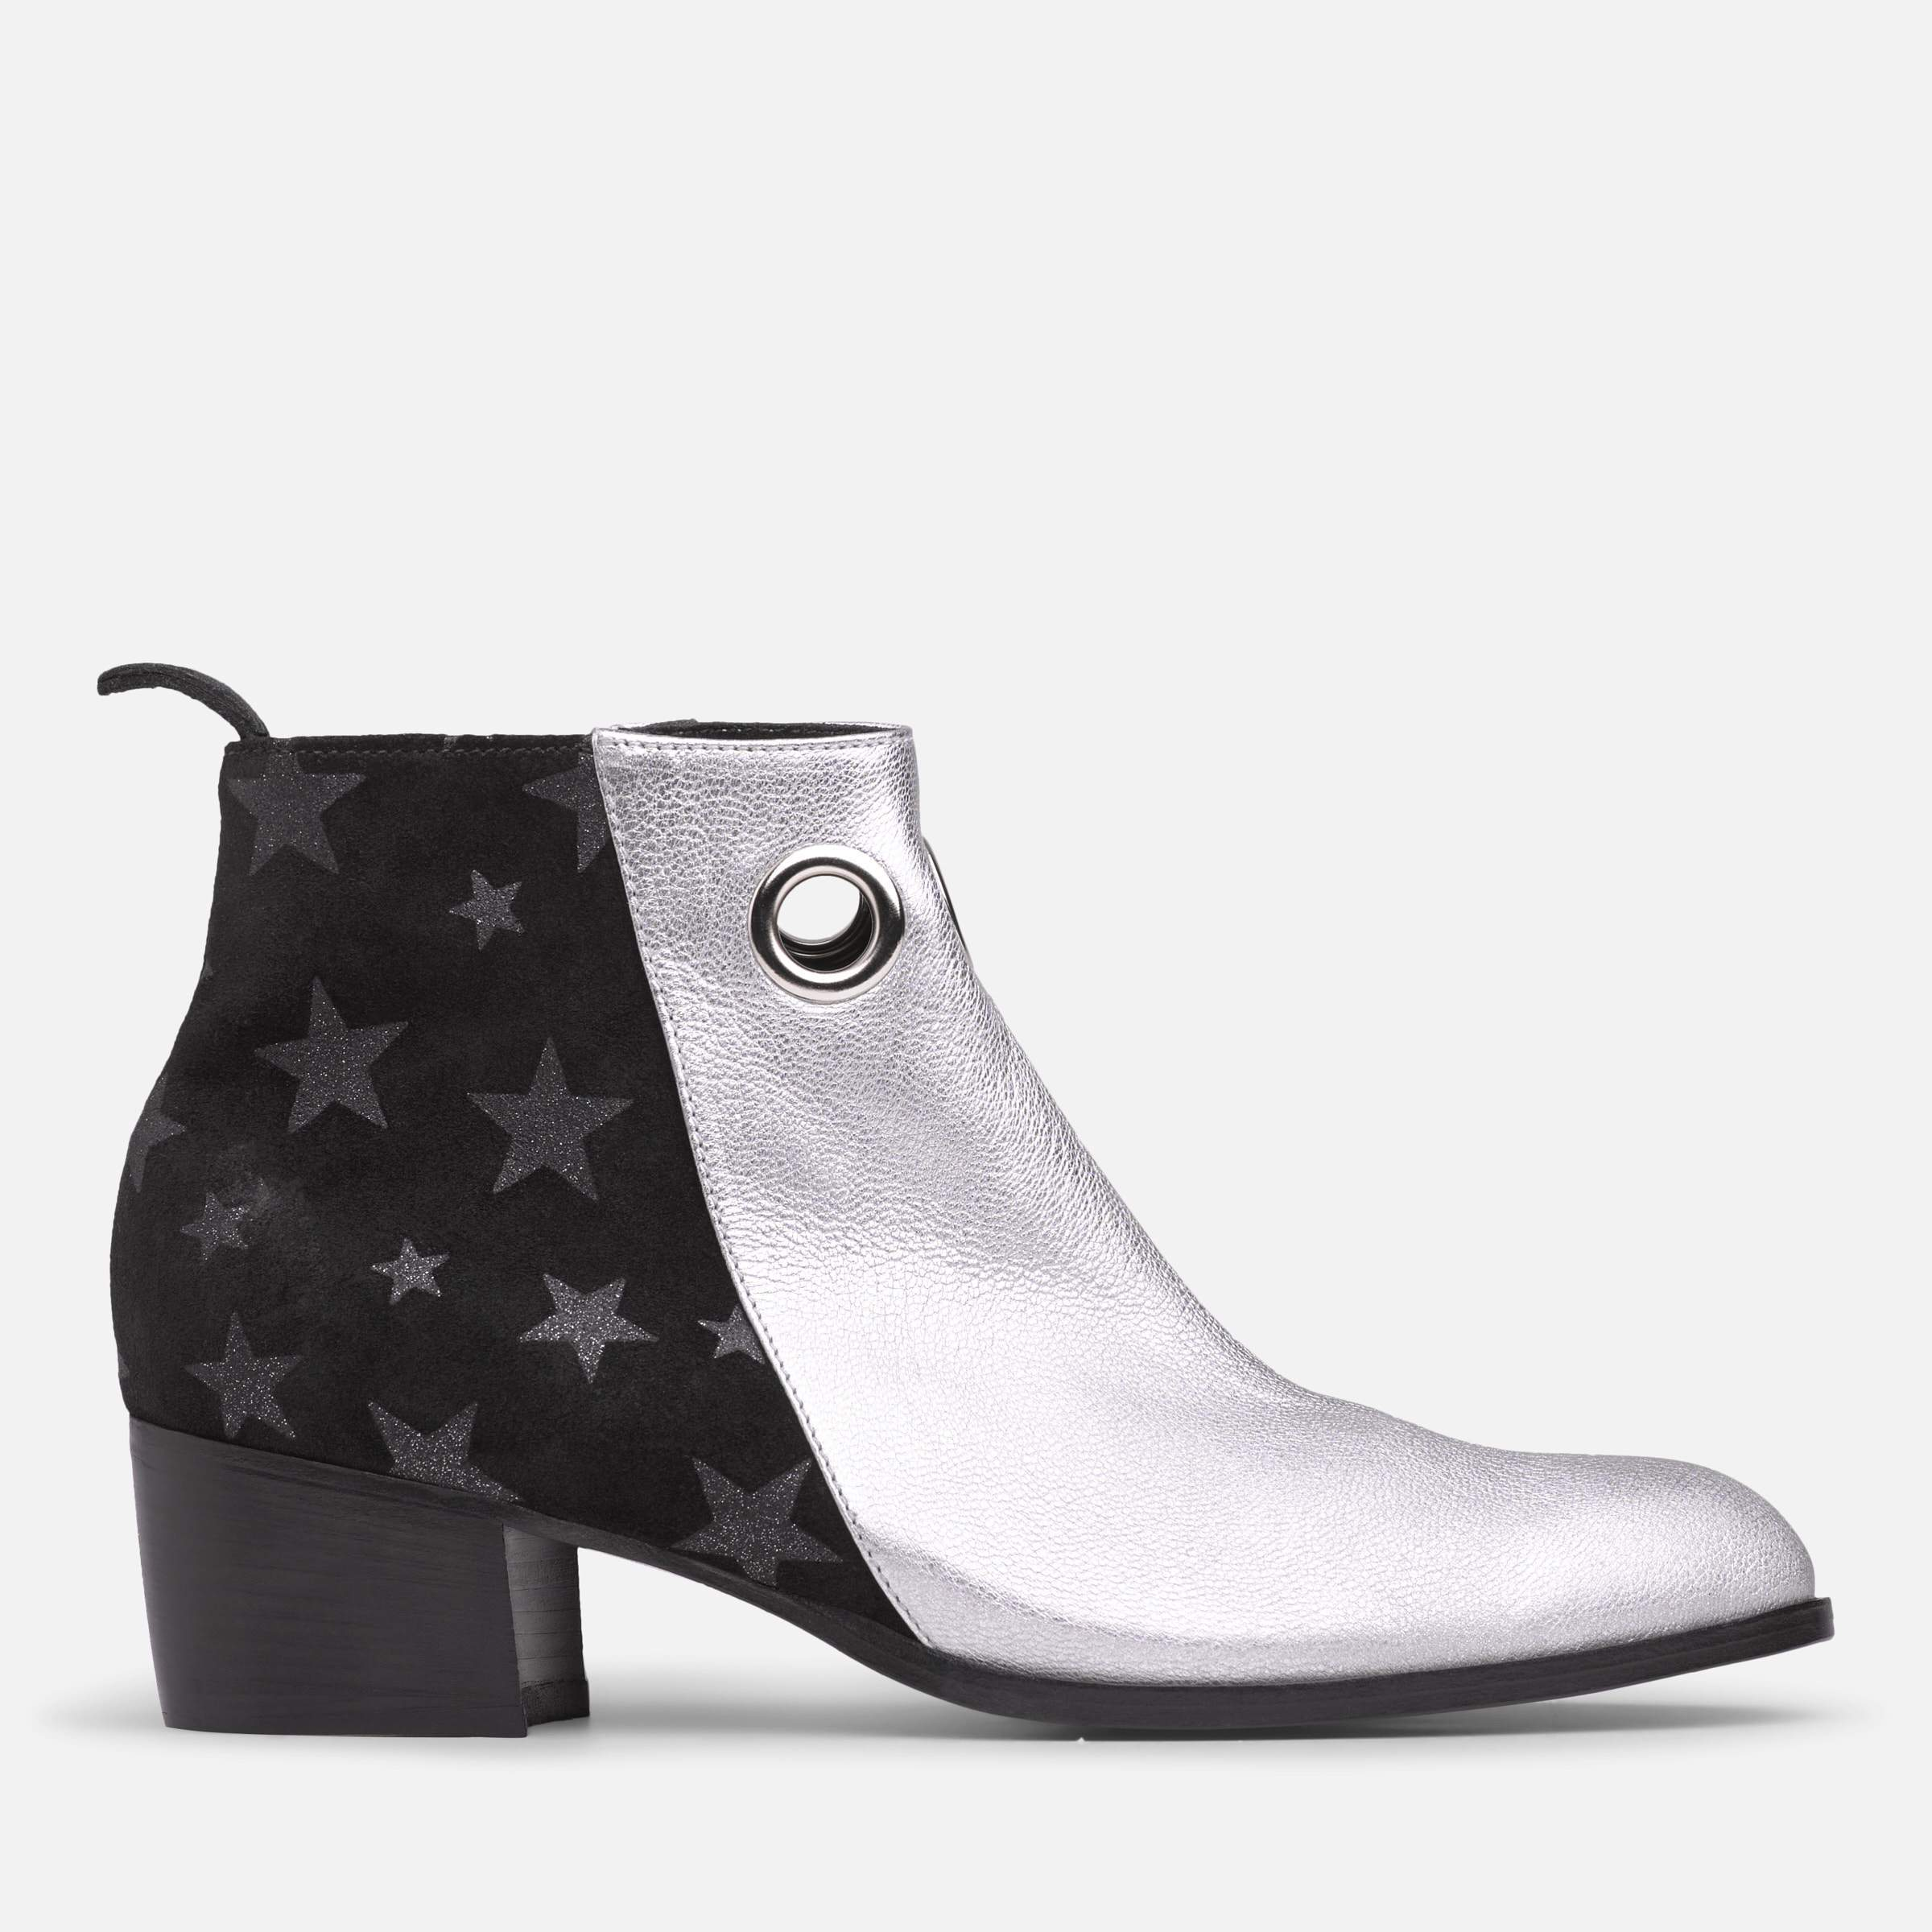 STAR EYELET BOOTIE (AVAILABLE NOW)